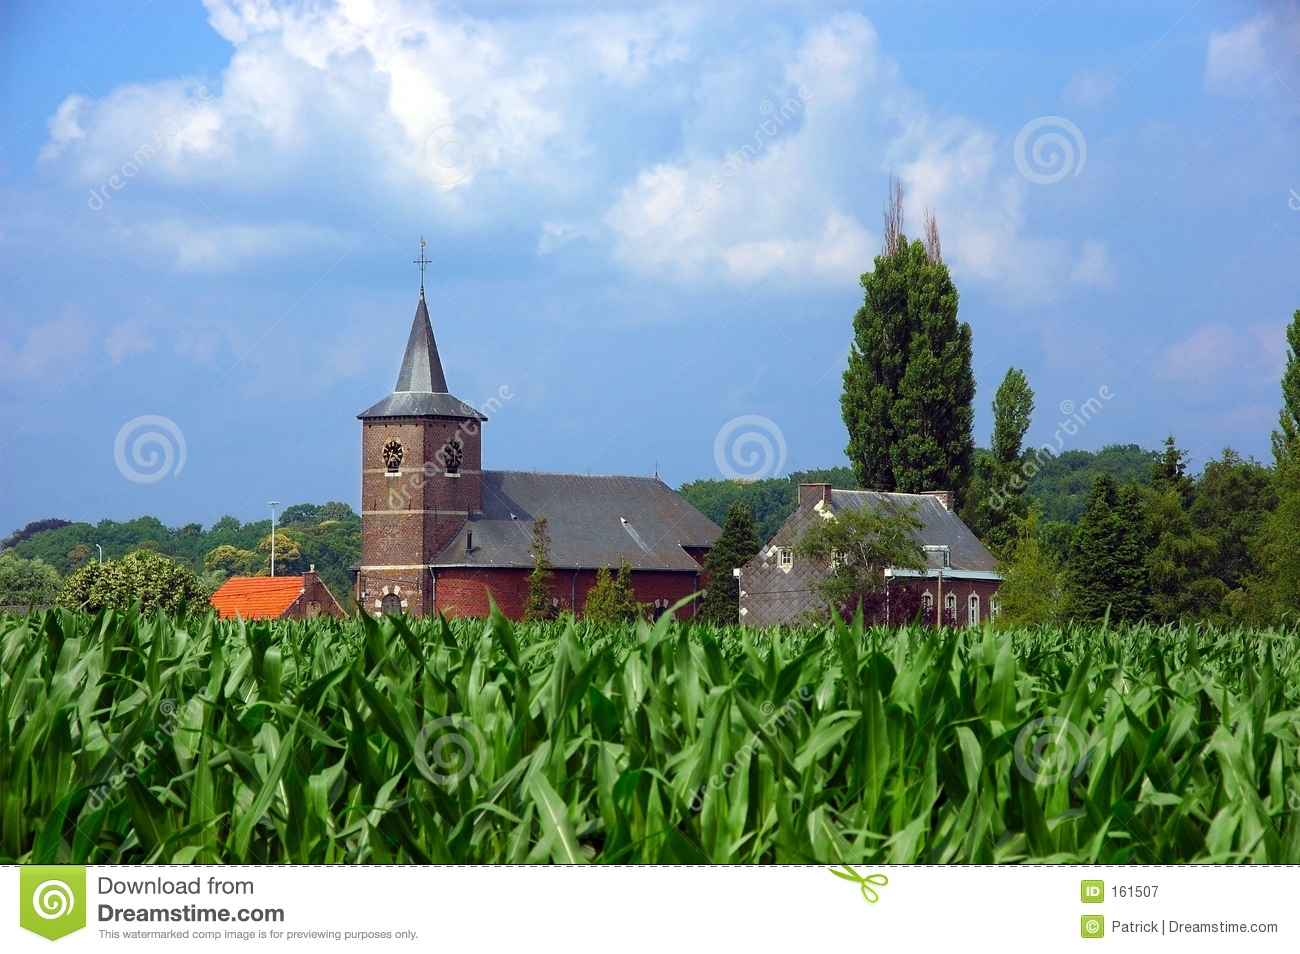 Church in corn field.